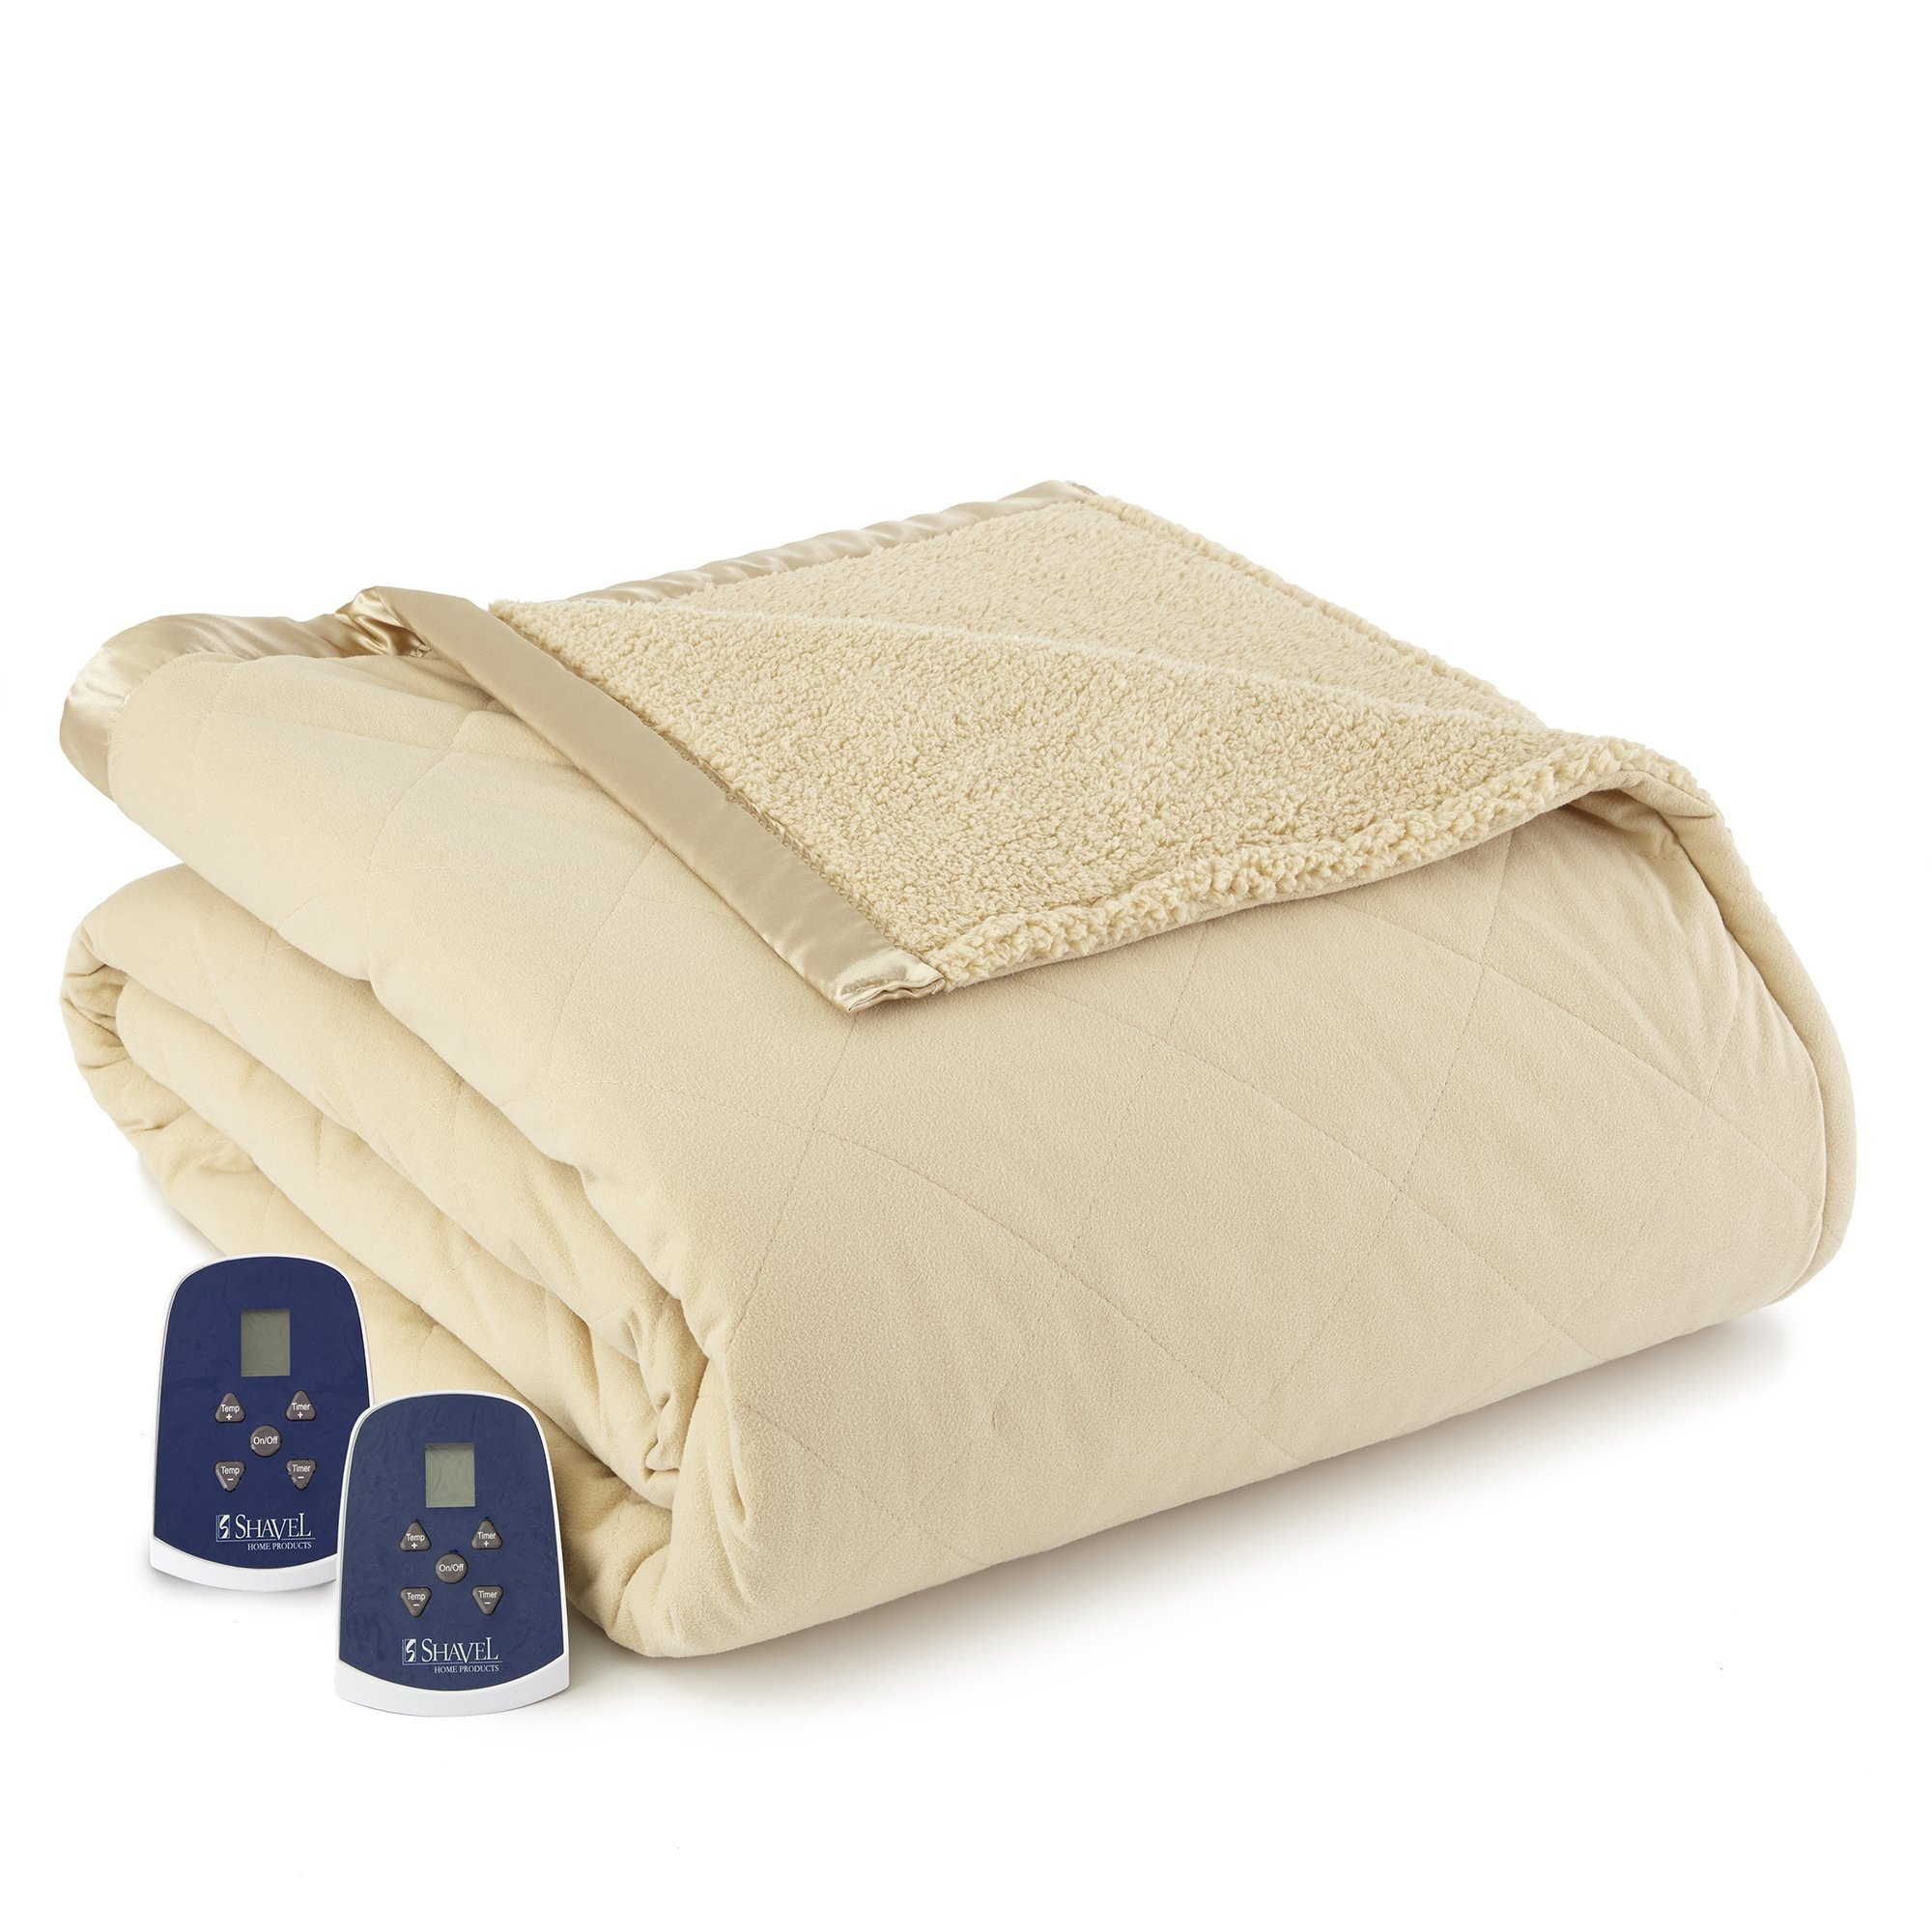 Thermee Micro Flannel Electric Blanket with Sherpa Back, Tan, Twin by Thermee Micro Flannel